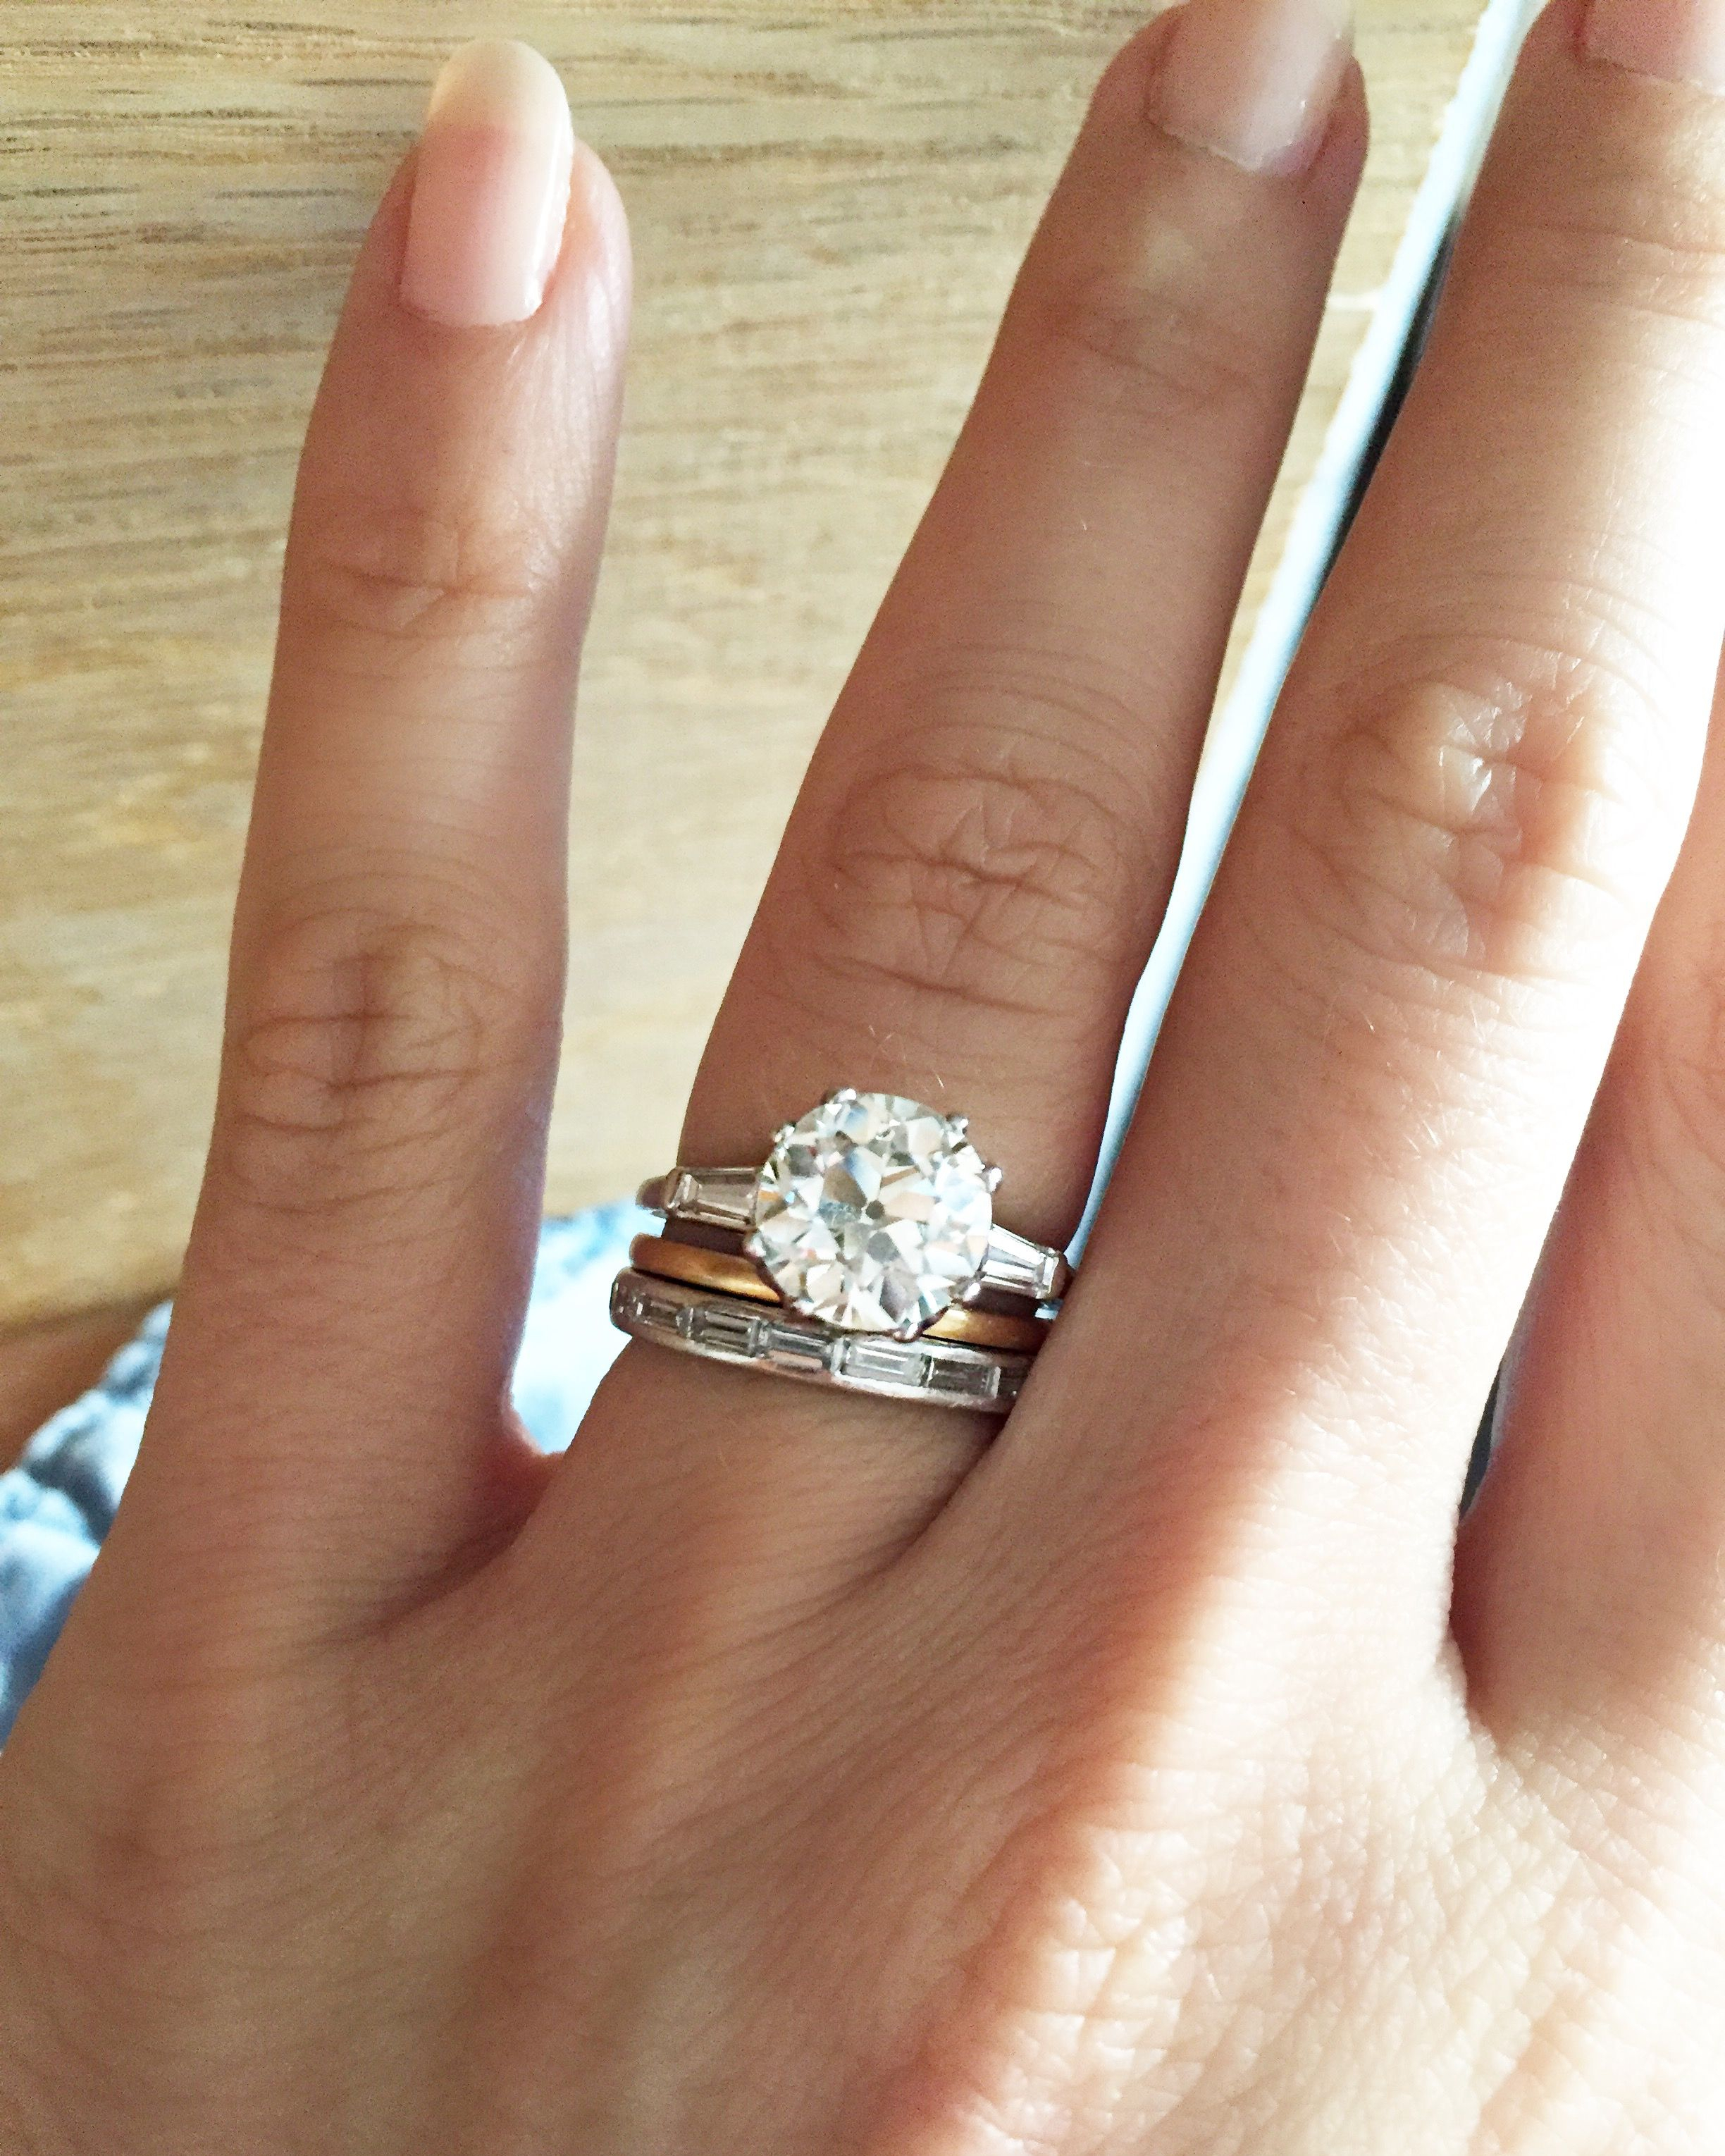 2.60 Carat Old European Cut Diamond Engagement Ring With With Heart Shaped Engagement Rings With Tapered Baguette Side Stones (Gallery 10 of 25)